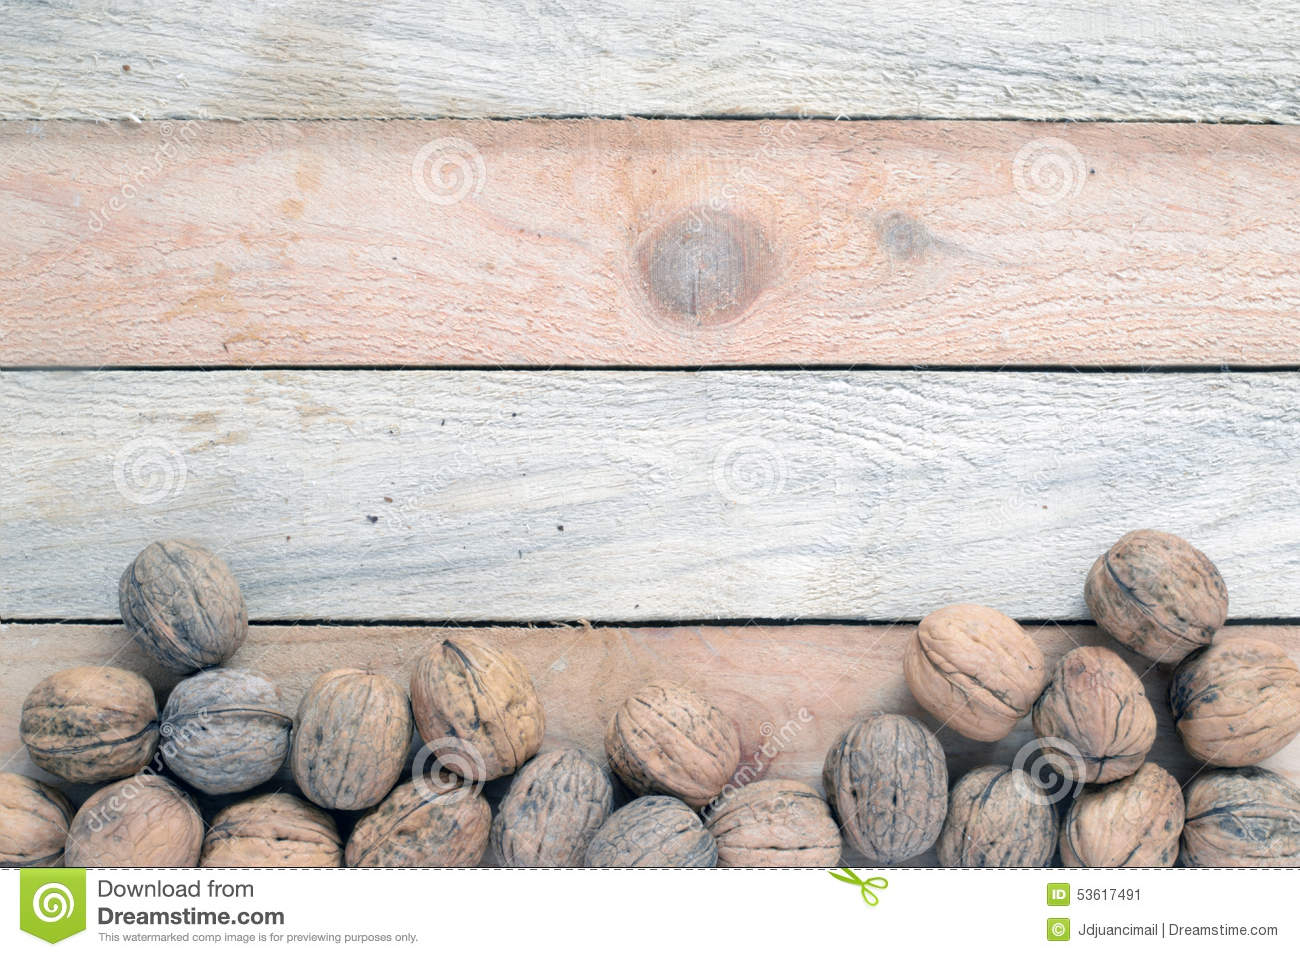 Some nuts scattered on a WOODEN TABLE.